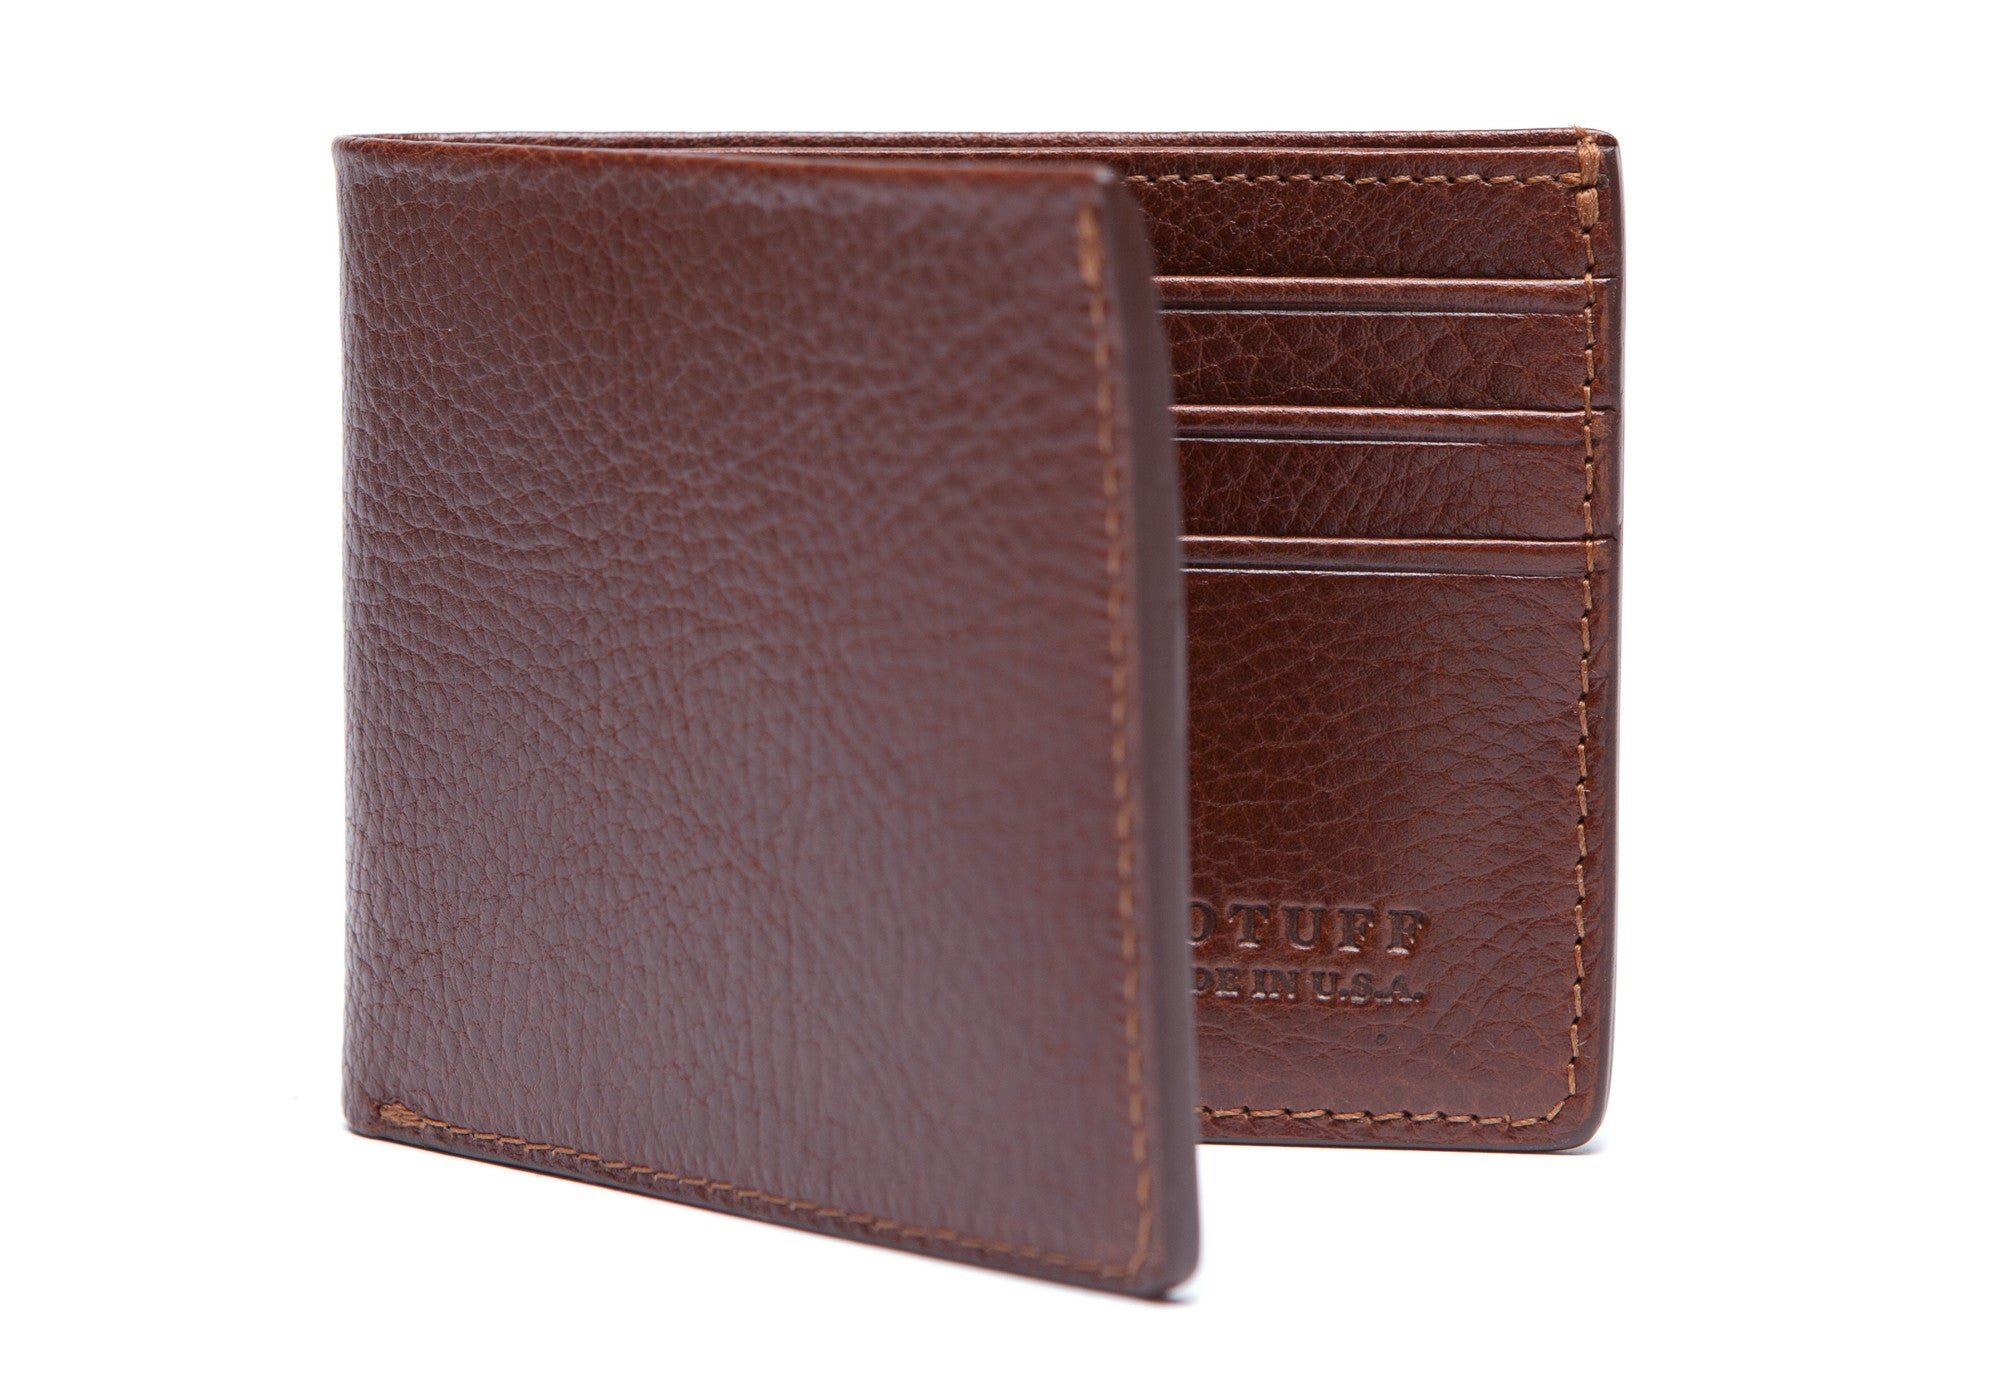 Leather Bifold Wallet Chestnut|Front View Closed